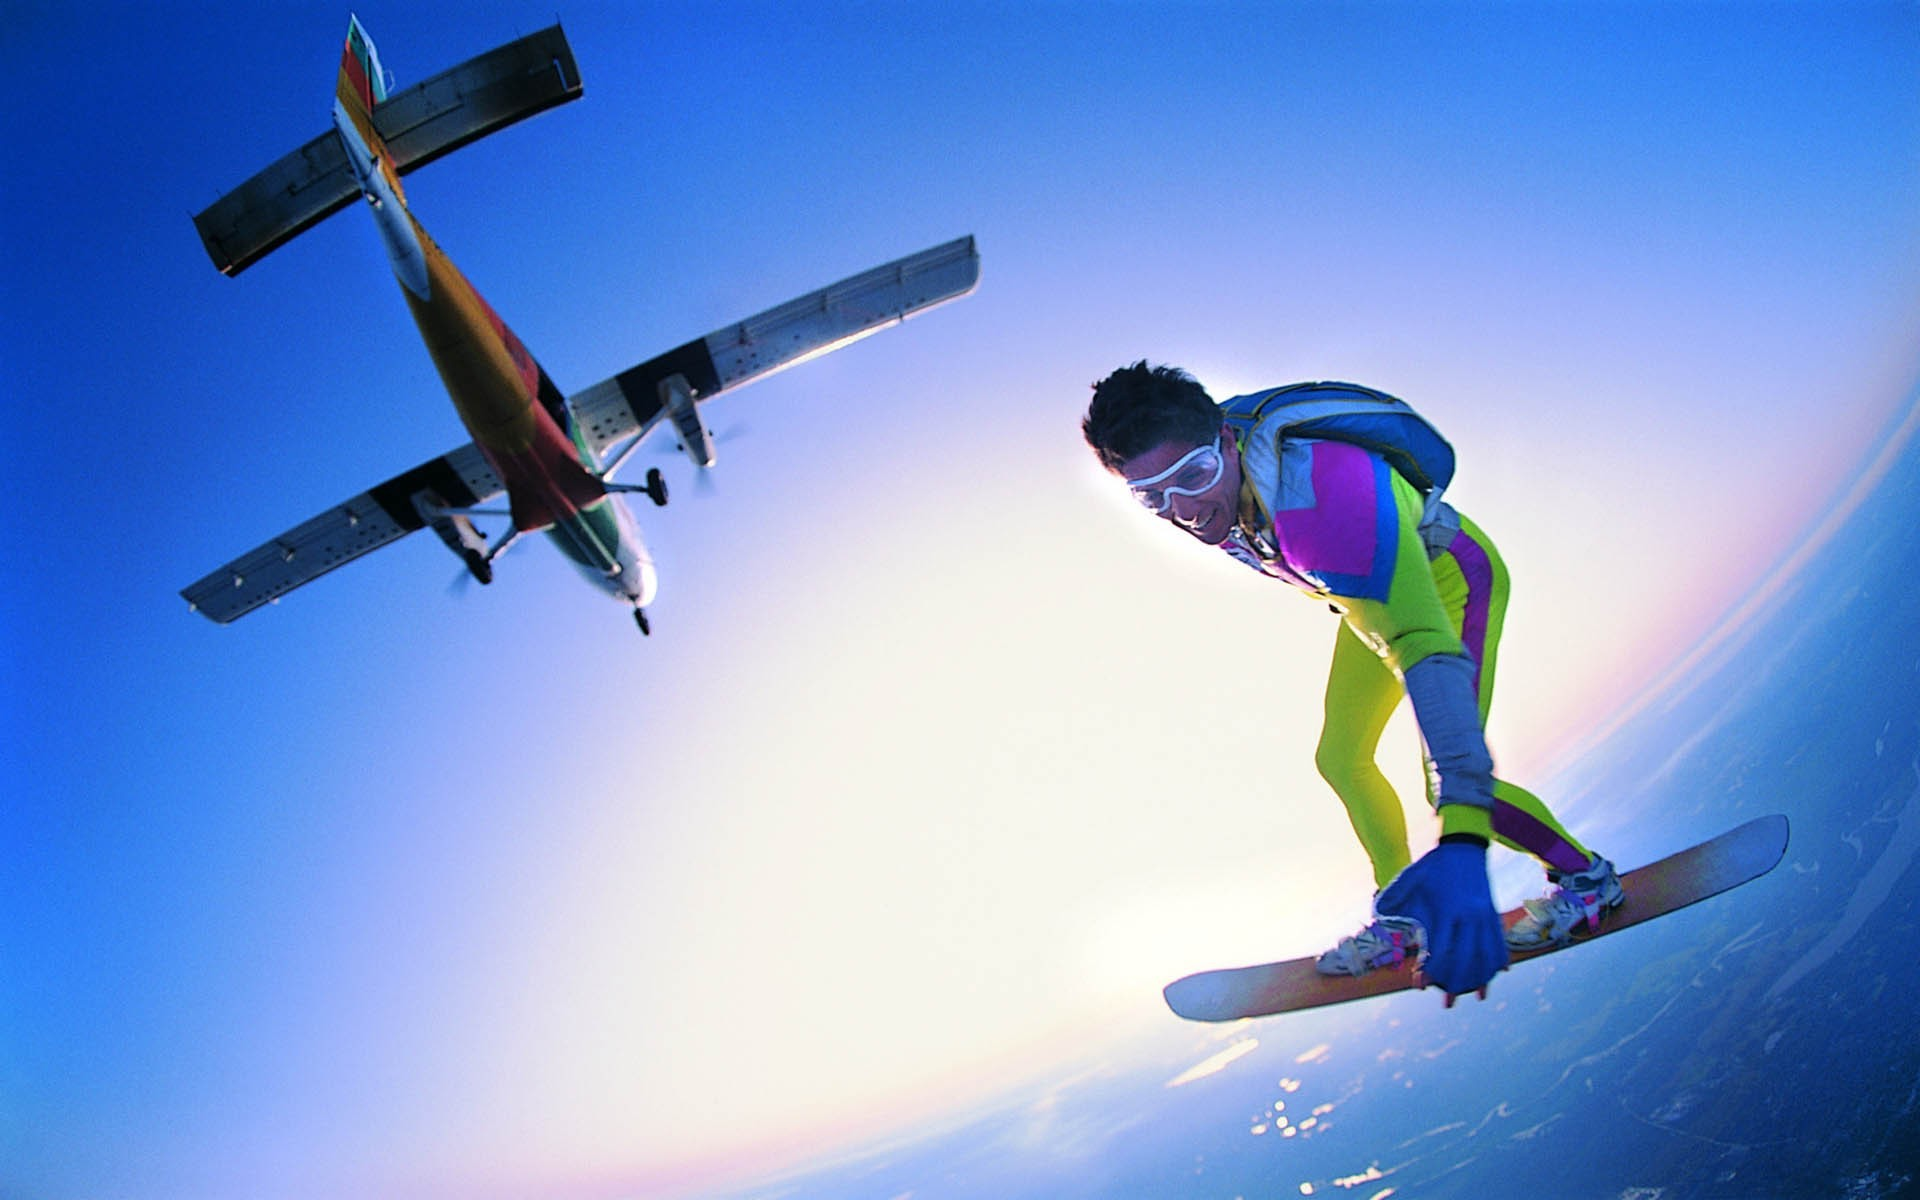 Download Skydiving wallpaper (1920x1200)